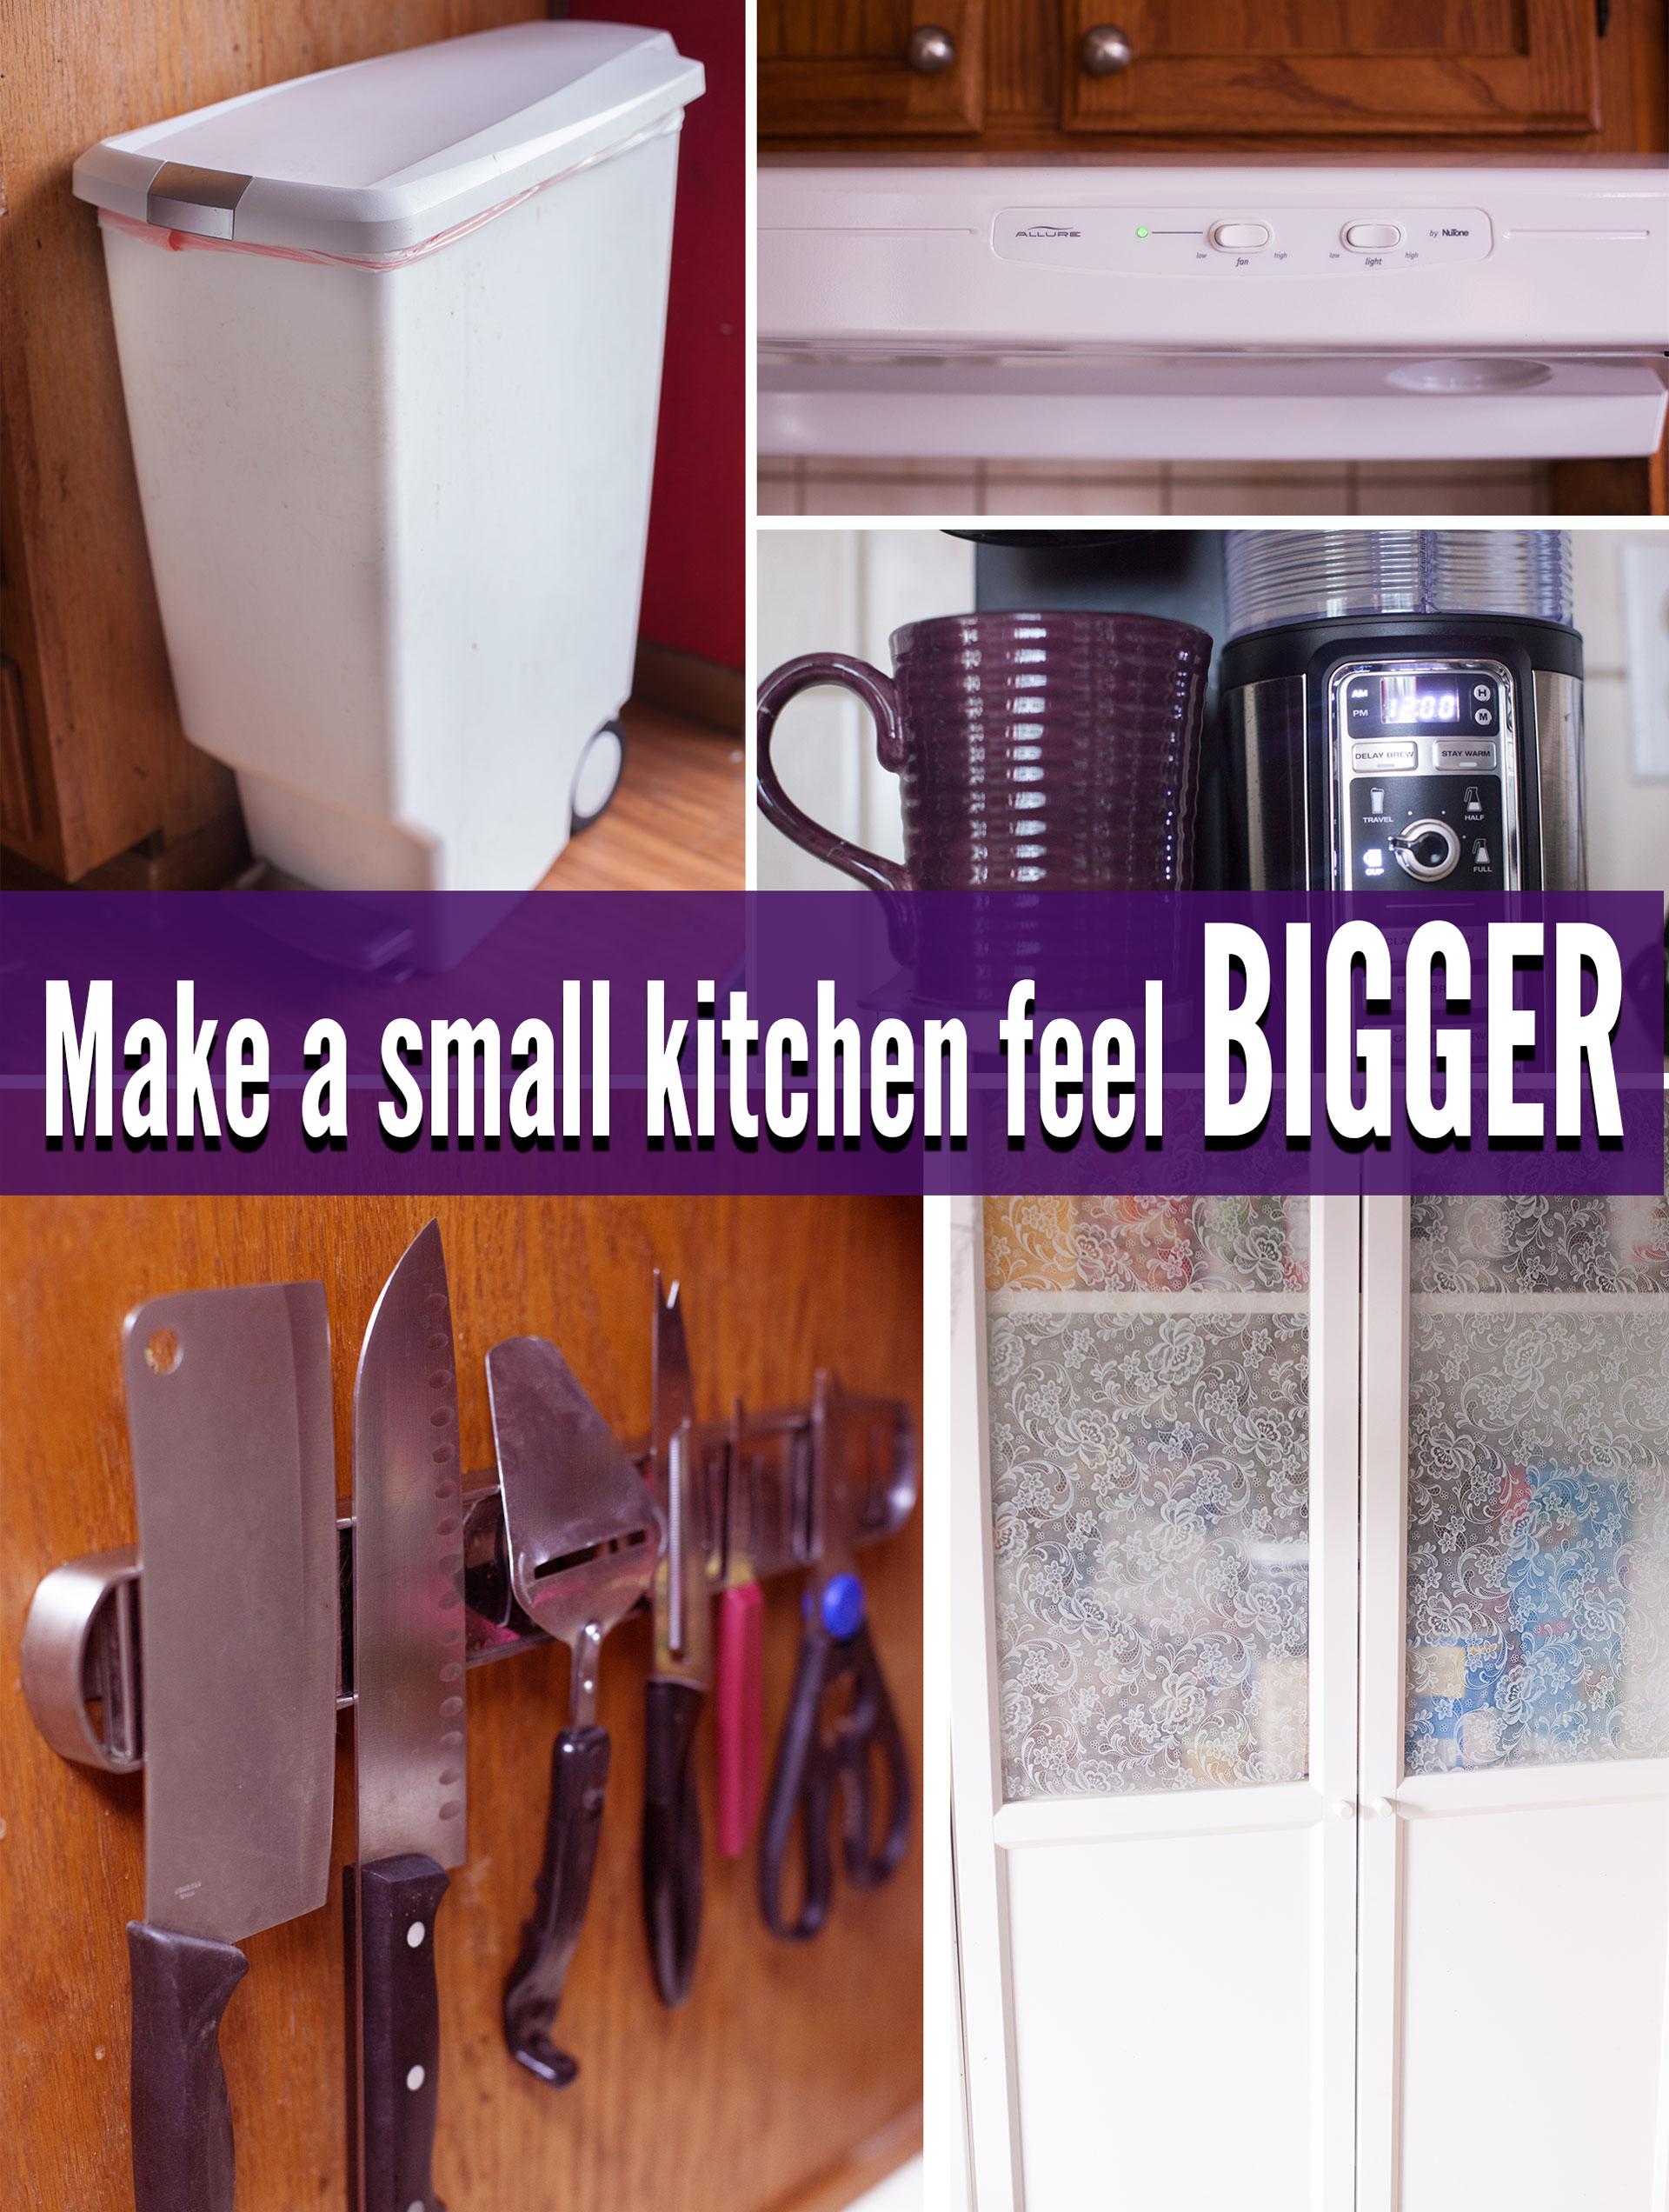 5 Favorite Items for Small Kitchens